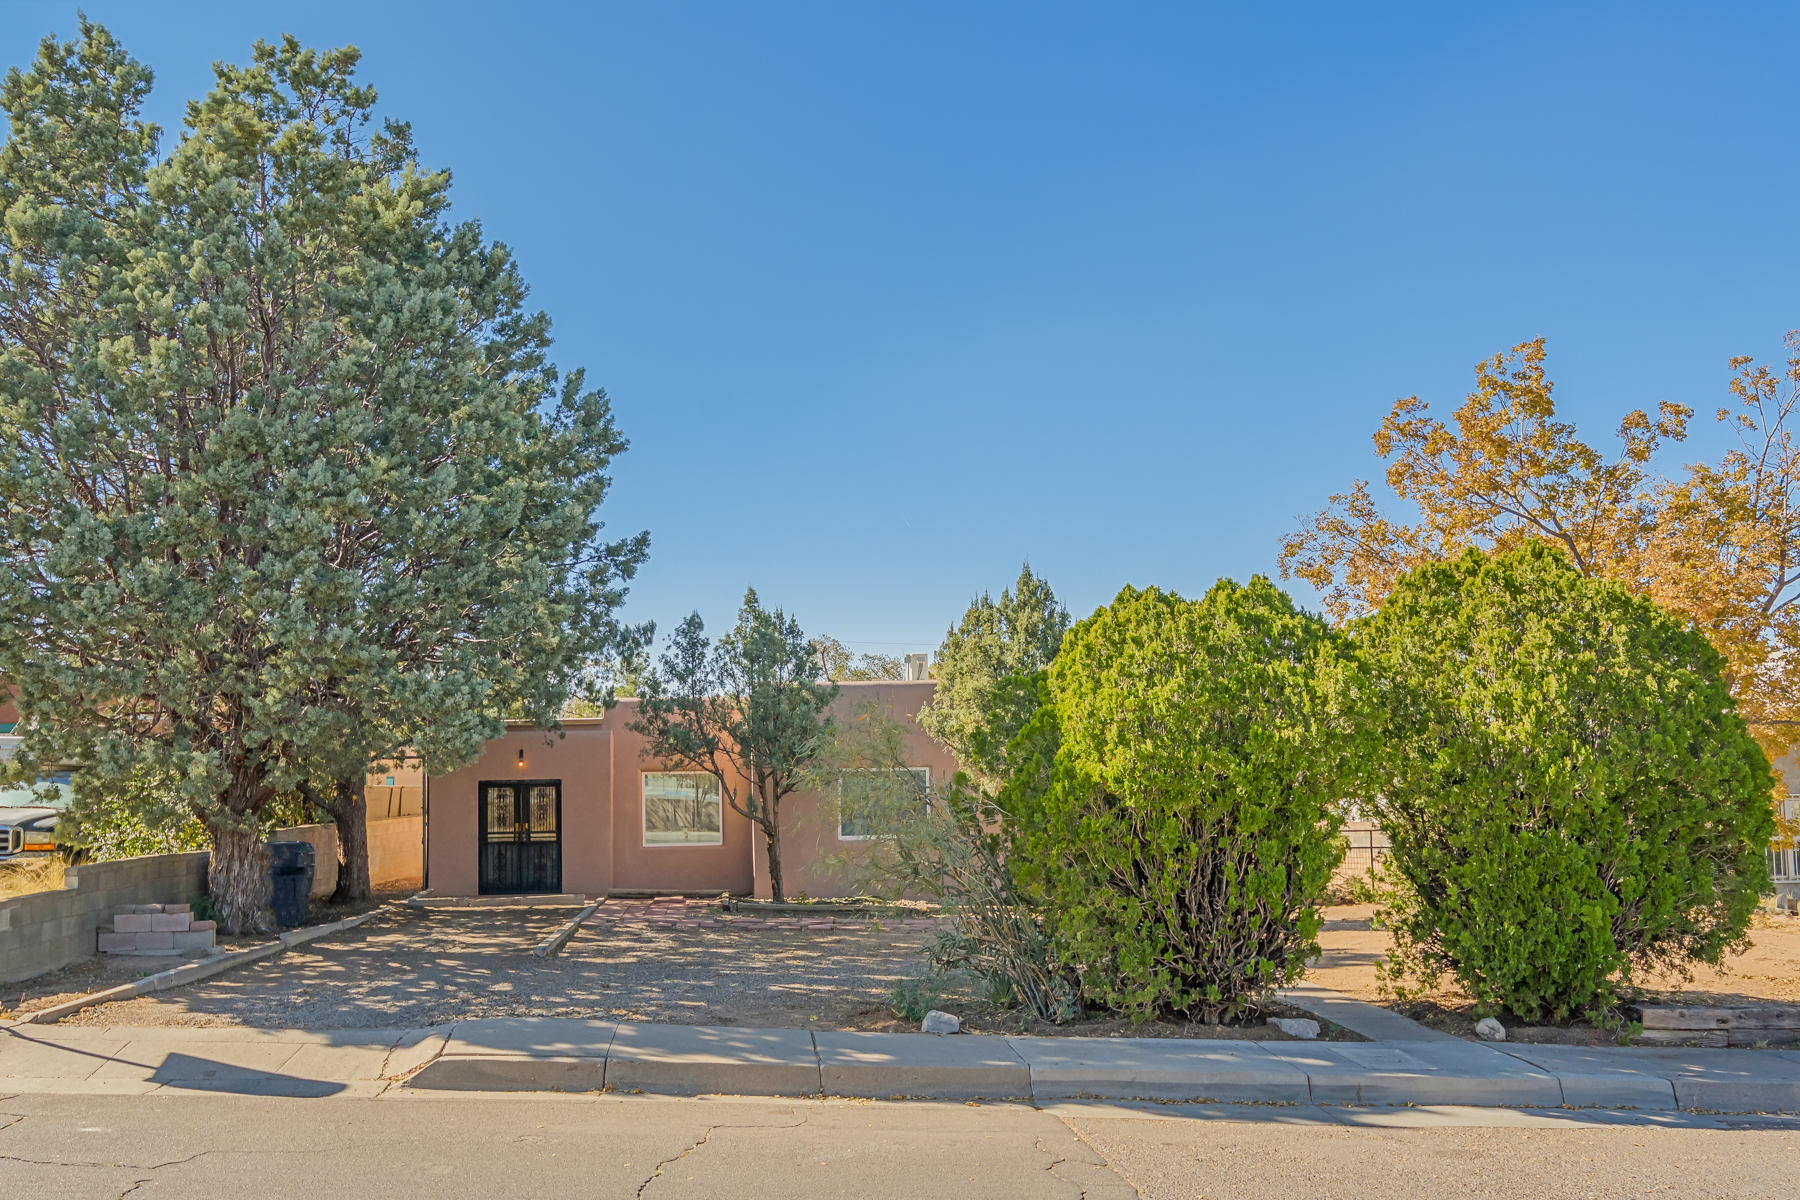 Super close to Hyder Park and Nob Hill, UNM, the hospitals and KAFB.  New roof, new windows and new stucco and the lot was cleared of very aged trees and overgrowth.  Saavy investor, starting out or starting over???  Ready for your design for gardening or outside retreat.  Inside was freshly painted.Please allow 48 hours for response to offer.  Sellers prefer Lori Holland at FNT.  Attach letter of pre-qualification to offer.